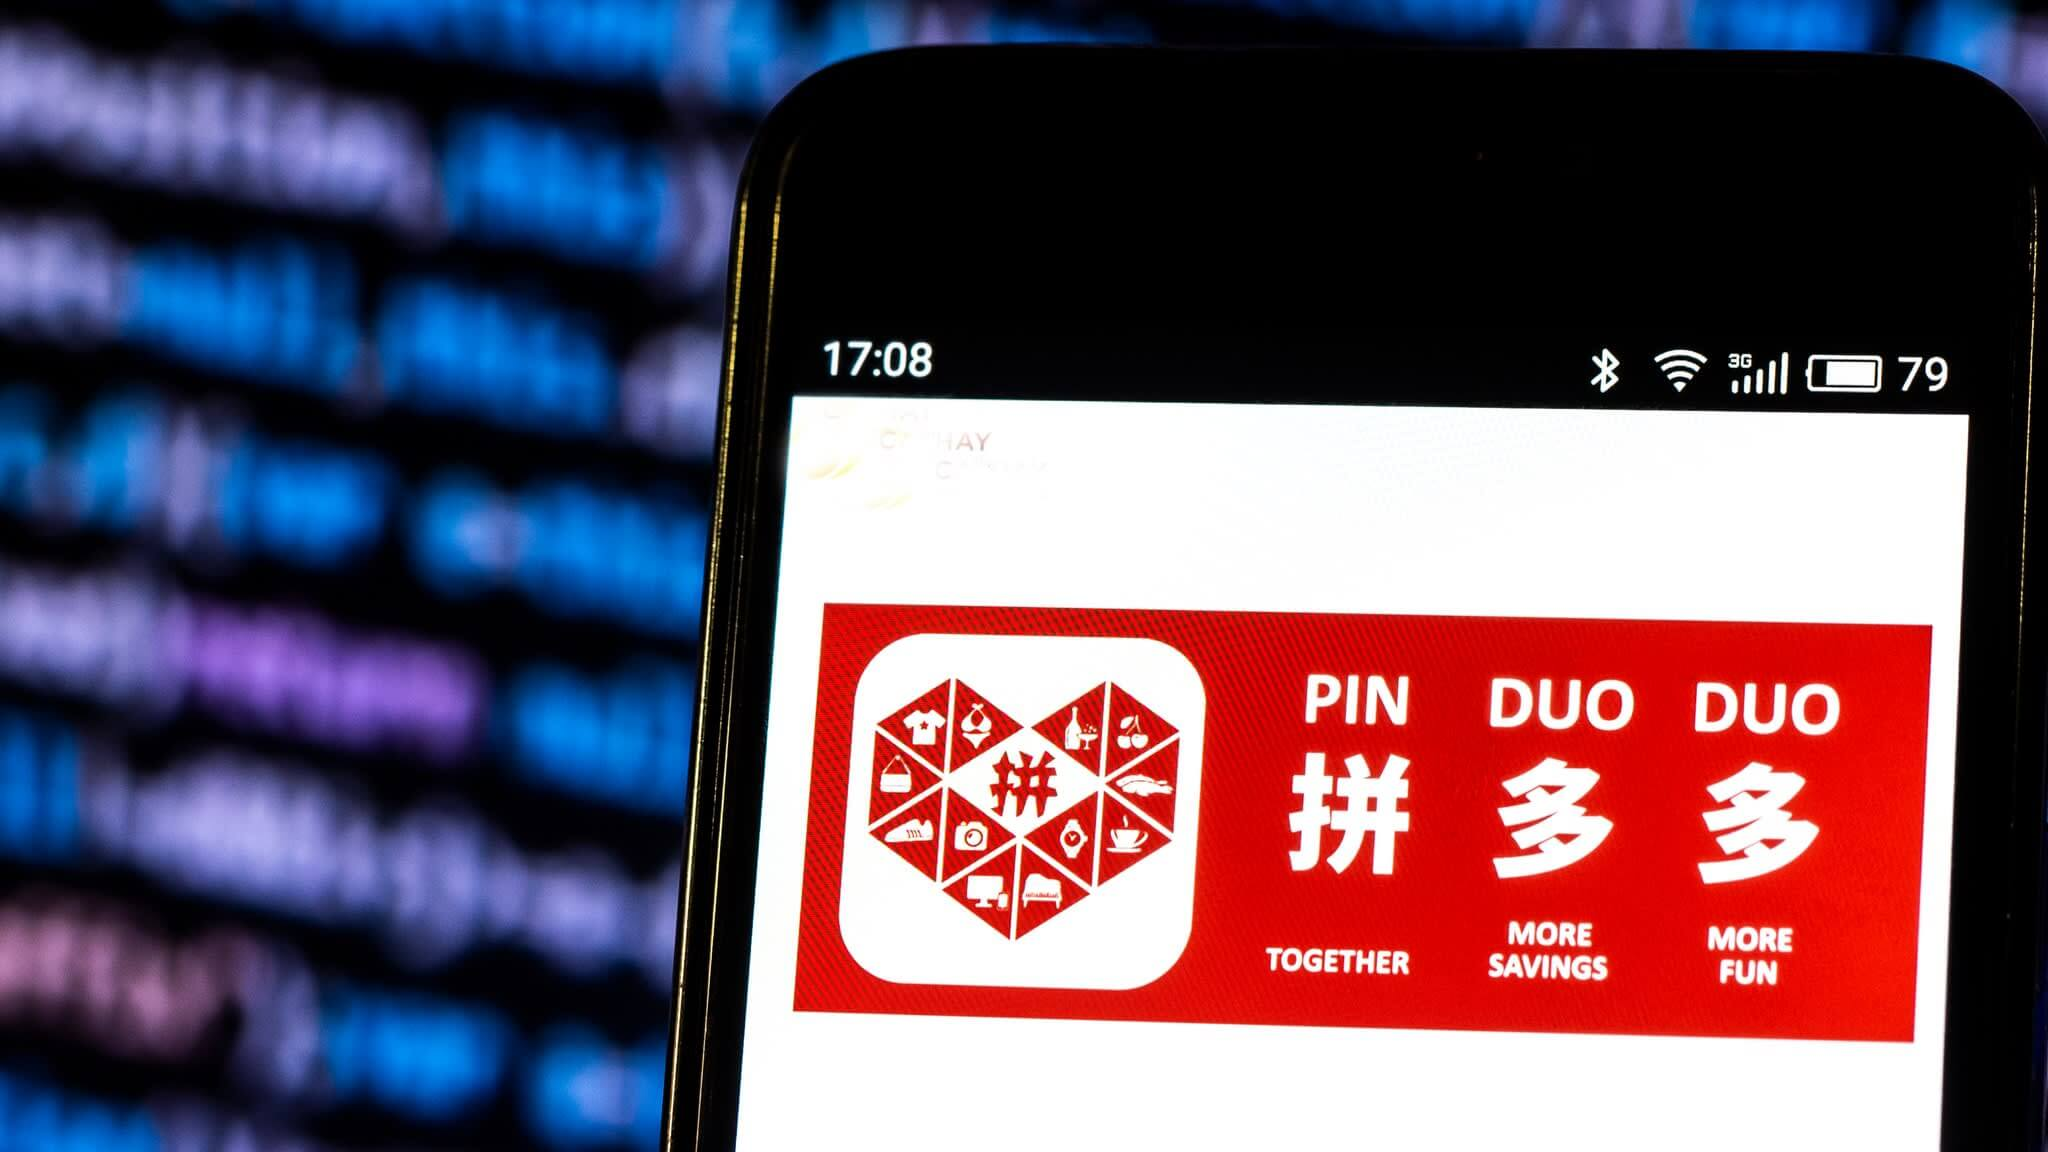 Pinduoduo e-commerce Chinese rival to raise more than $1 billion